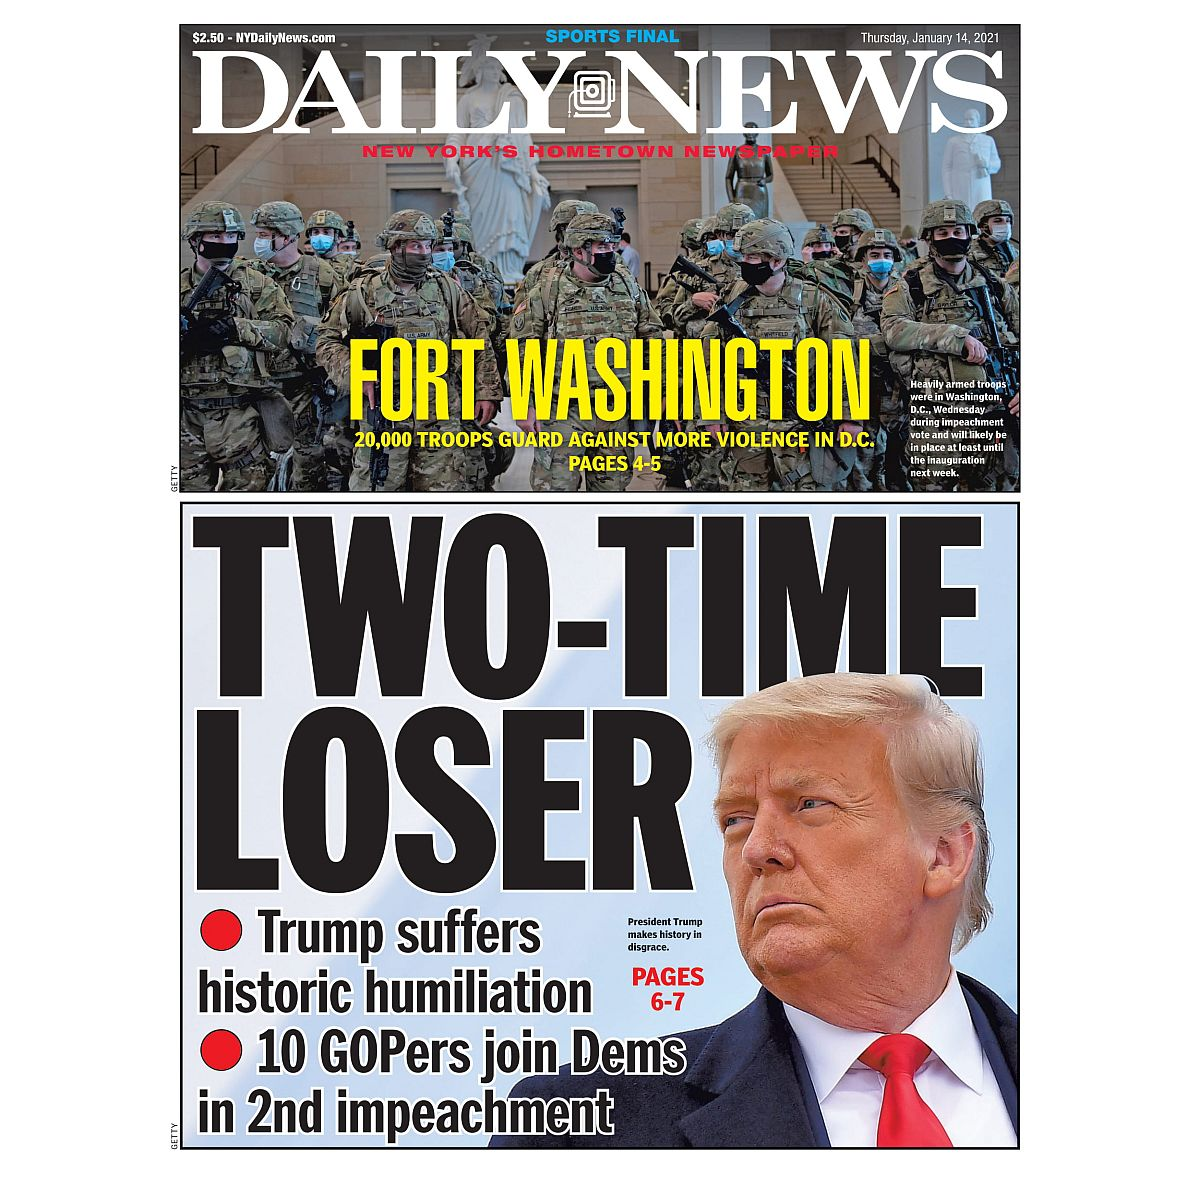 """""""TWO-TIME LOSER"""" 1/14/2021 Page Print"""